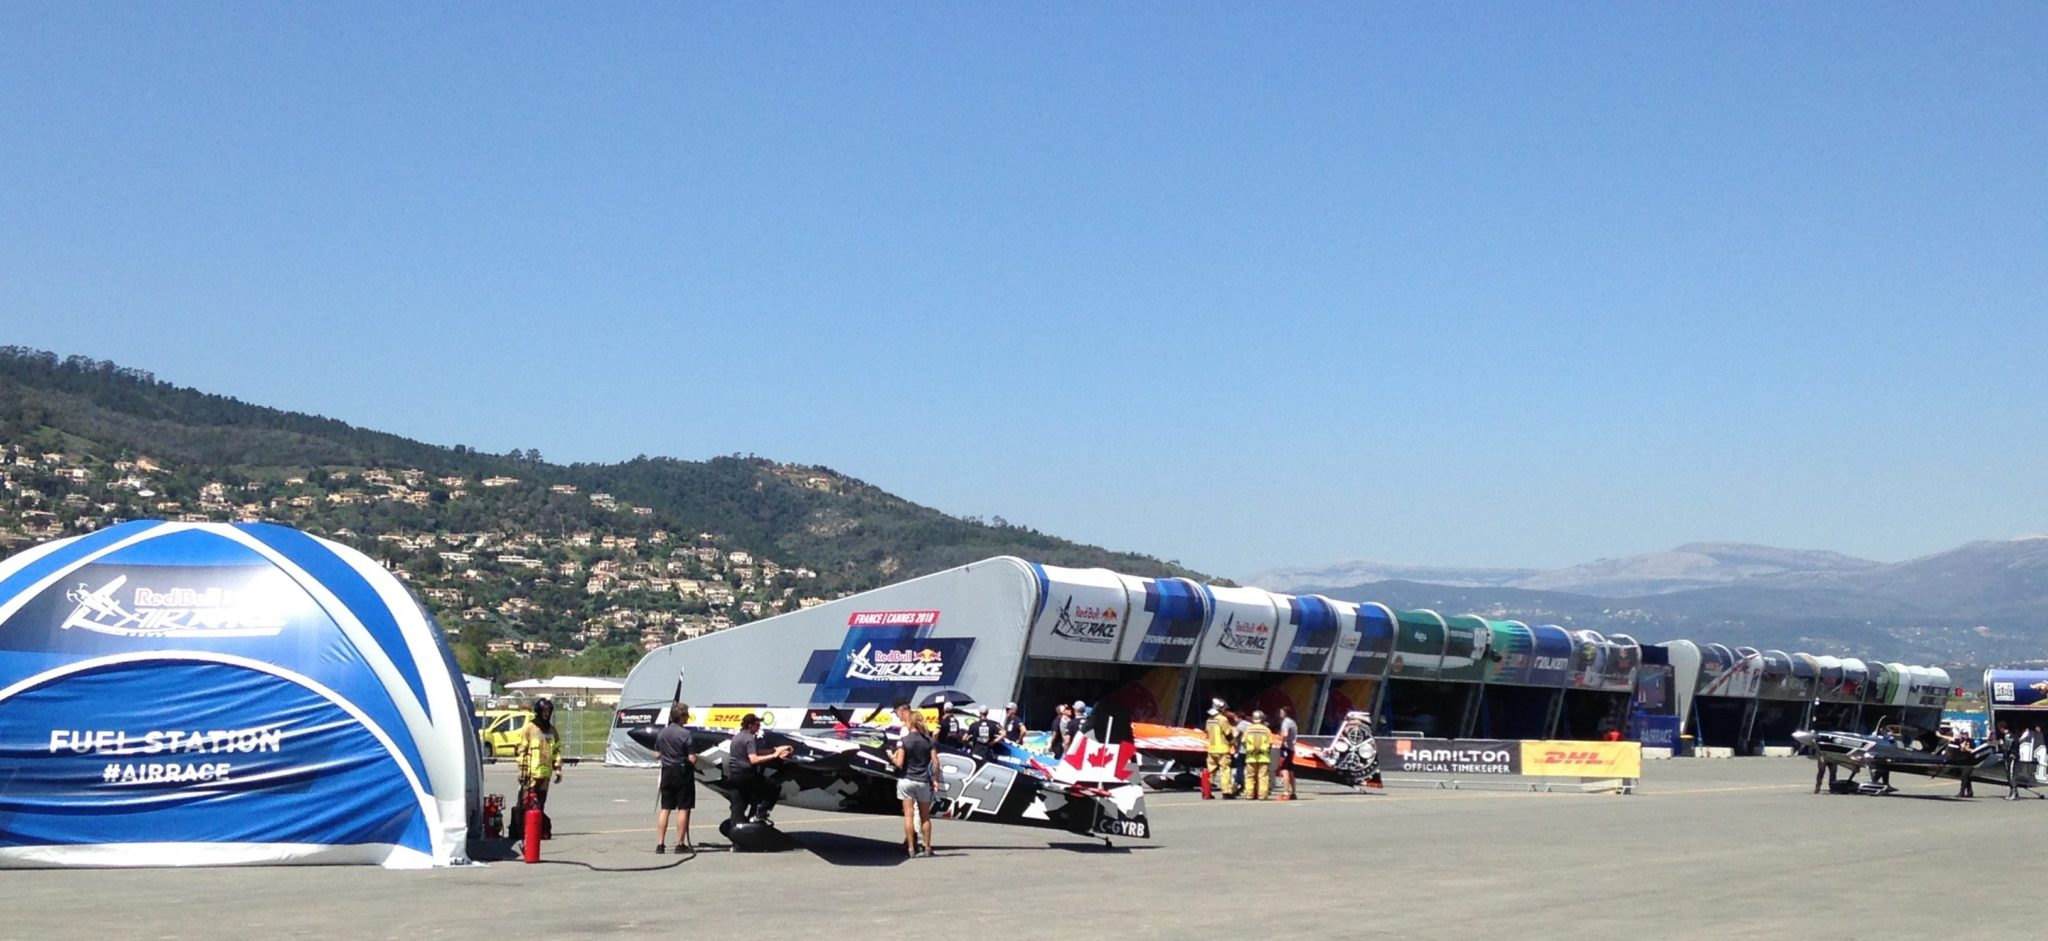 Red Bull Air Race 2018 Cannes Hangar